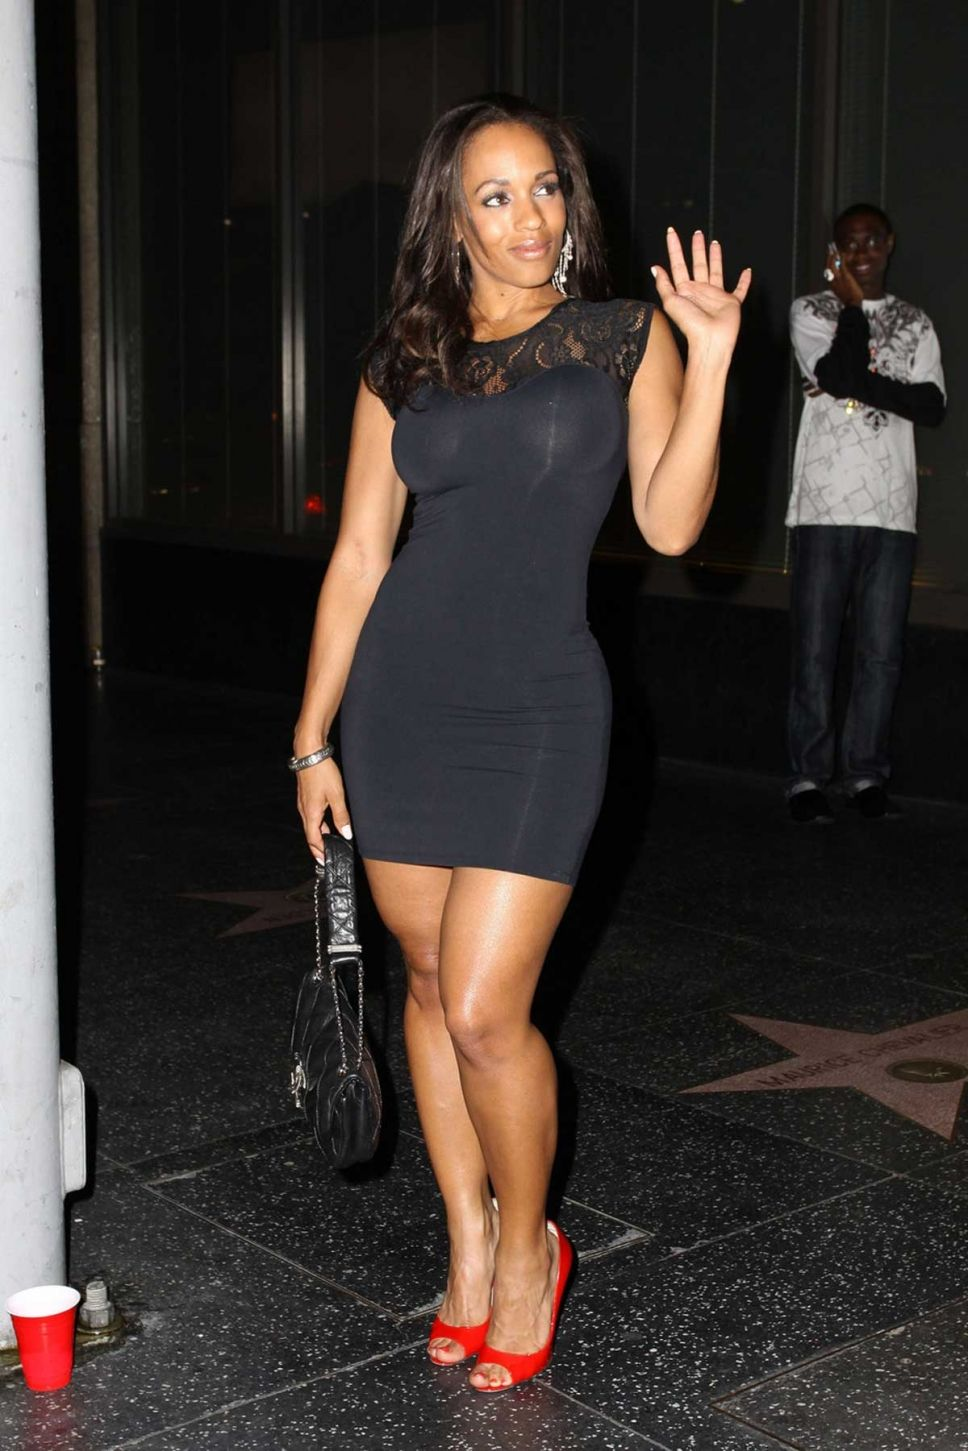 Melyssa Ford Melyssa Ford new picture